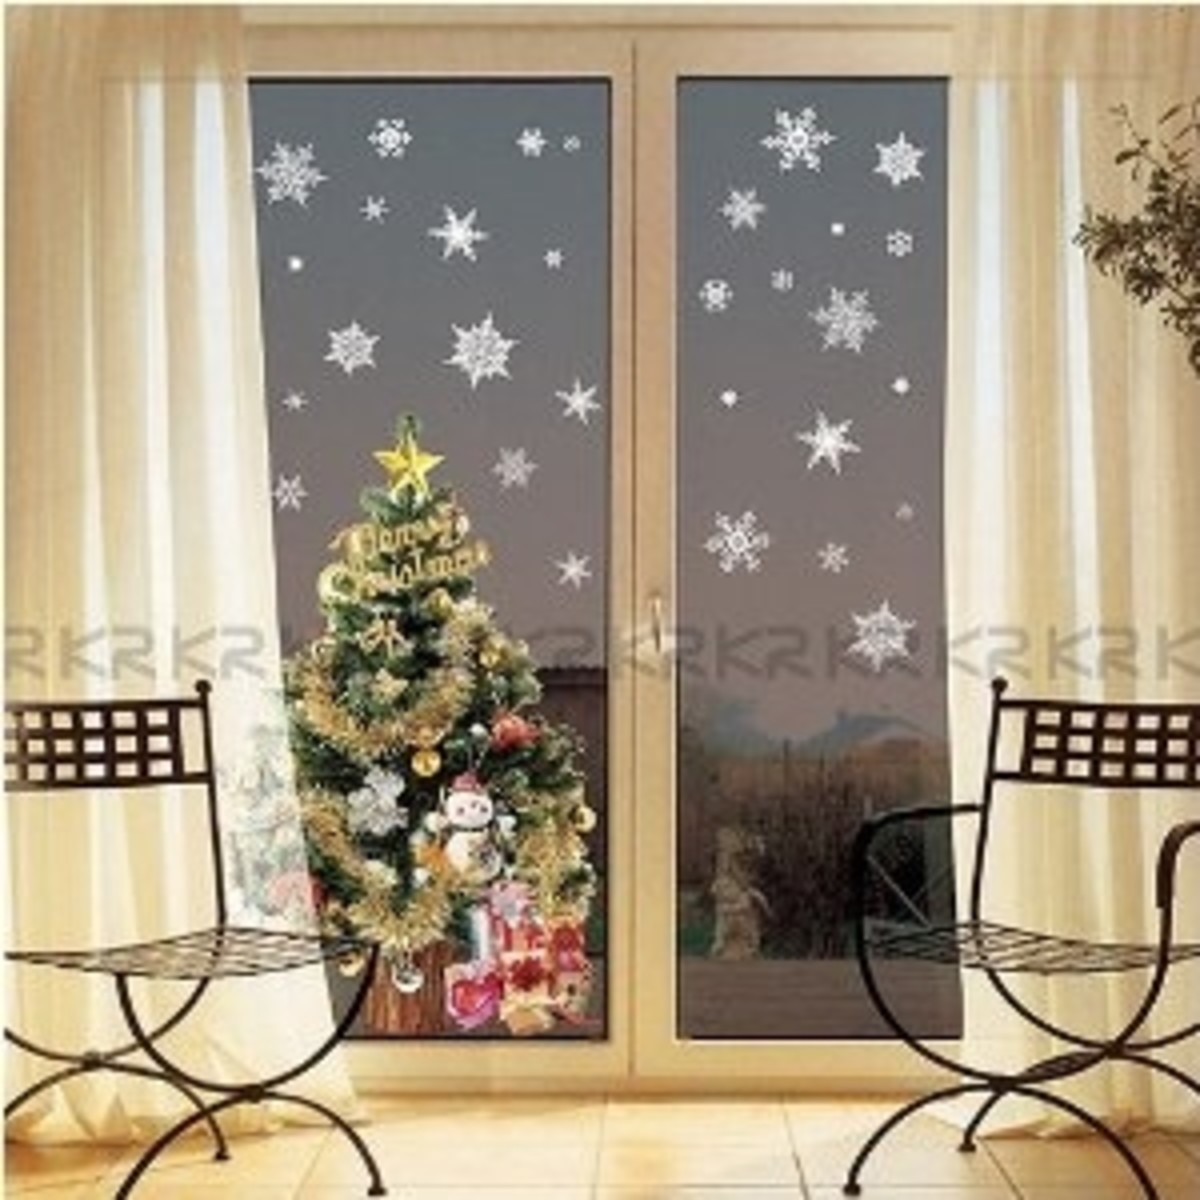 Scatter snowflake silhouettes on walls and windows, then highlight with delicate accessories.